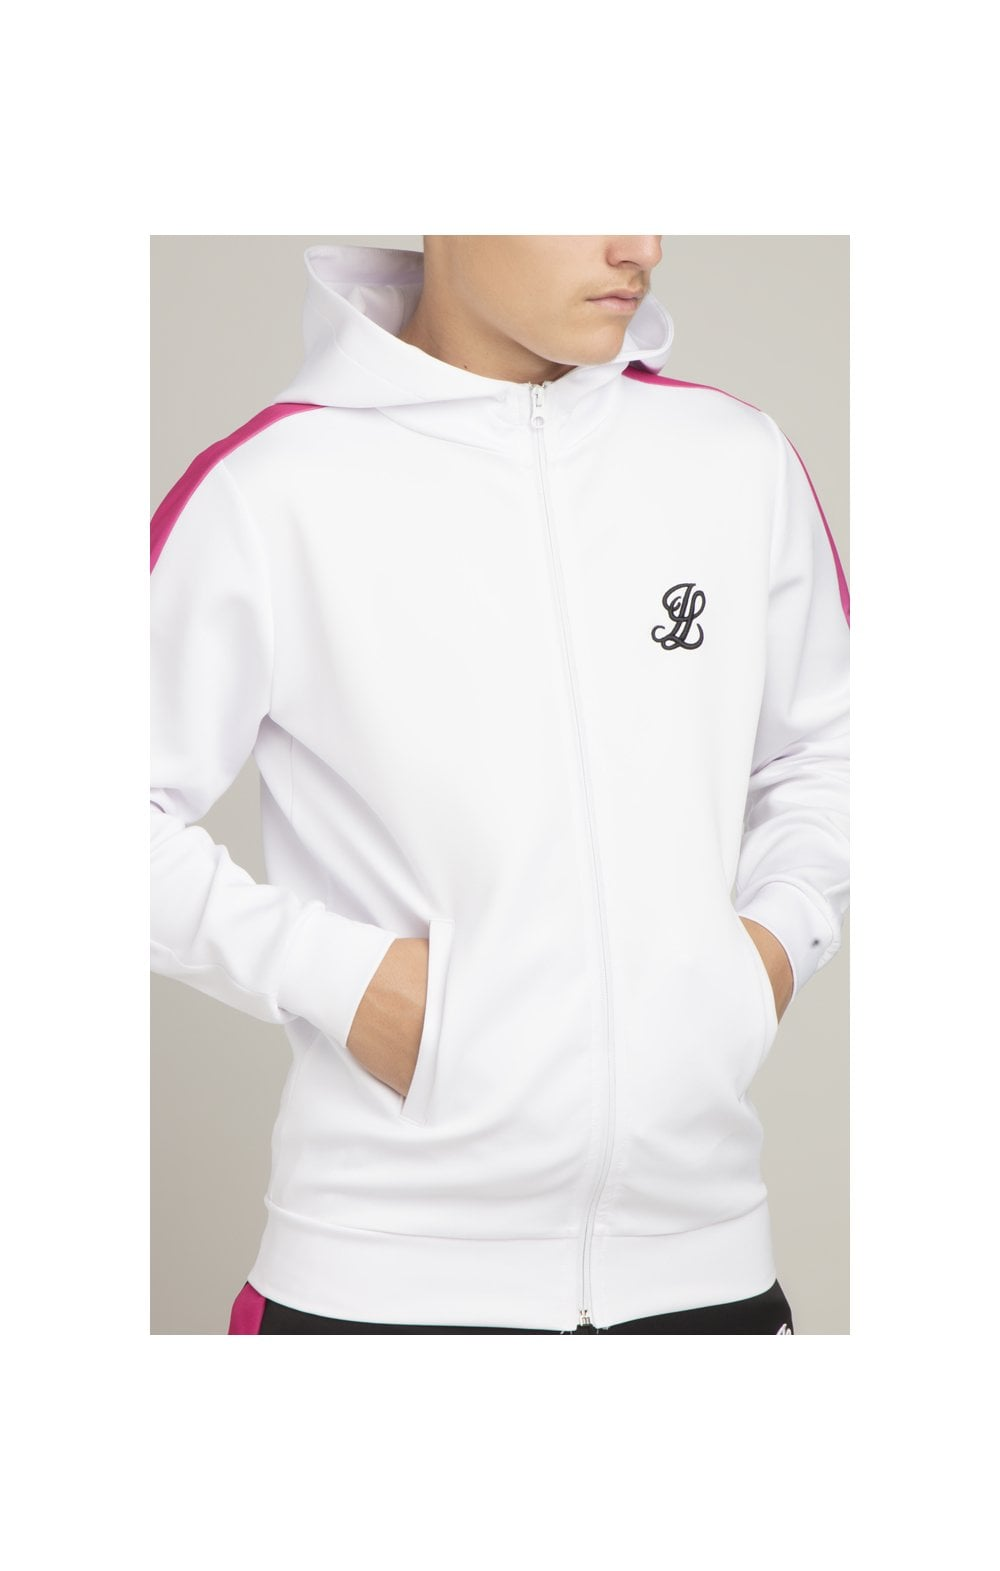 Illusive London Fade Panel Zip Through - White & Pink (1)